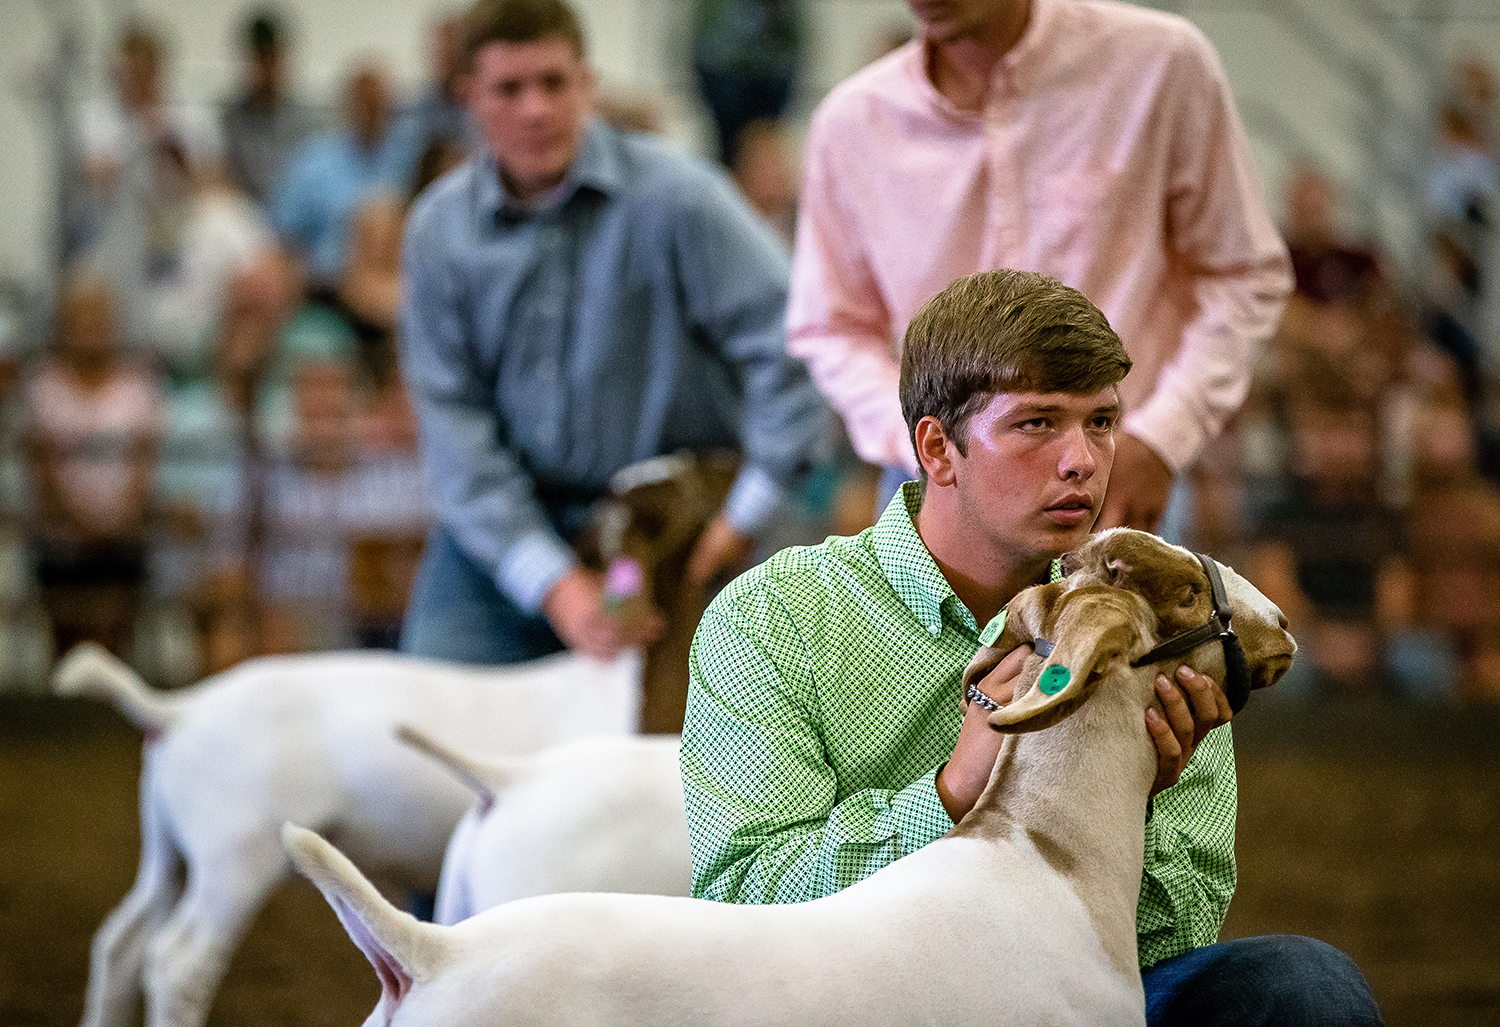 Chase Tomhave, 19, of Jacksonville, Ill., keeps his meat goat wether at attention during judging during the Parade of Champions at the Livestock Center during the Illinois State Fair at the Illinois State Fairgrounds, Saturday, Aug. 11, 2018, in Springfield, Ill. [Justin L. Fowler/The State Journal-Register]